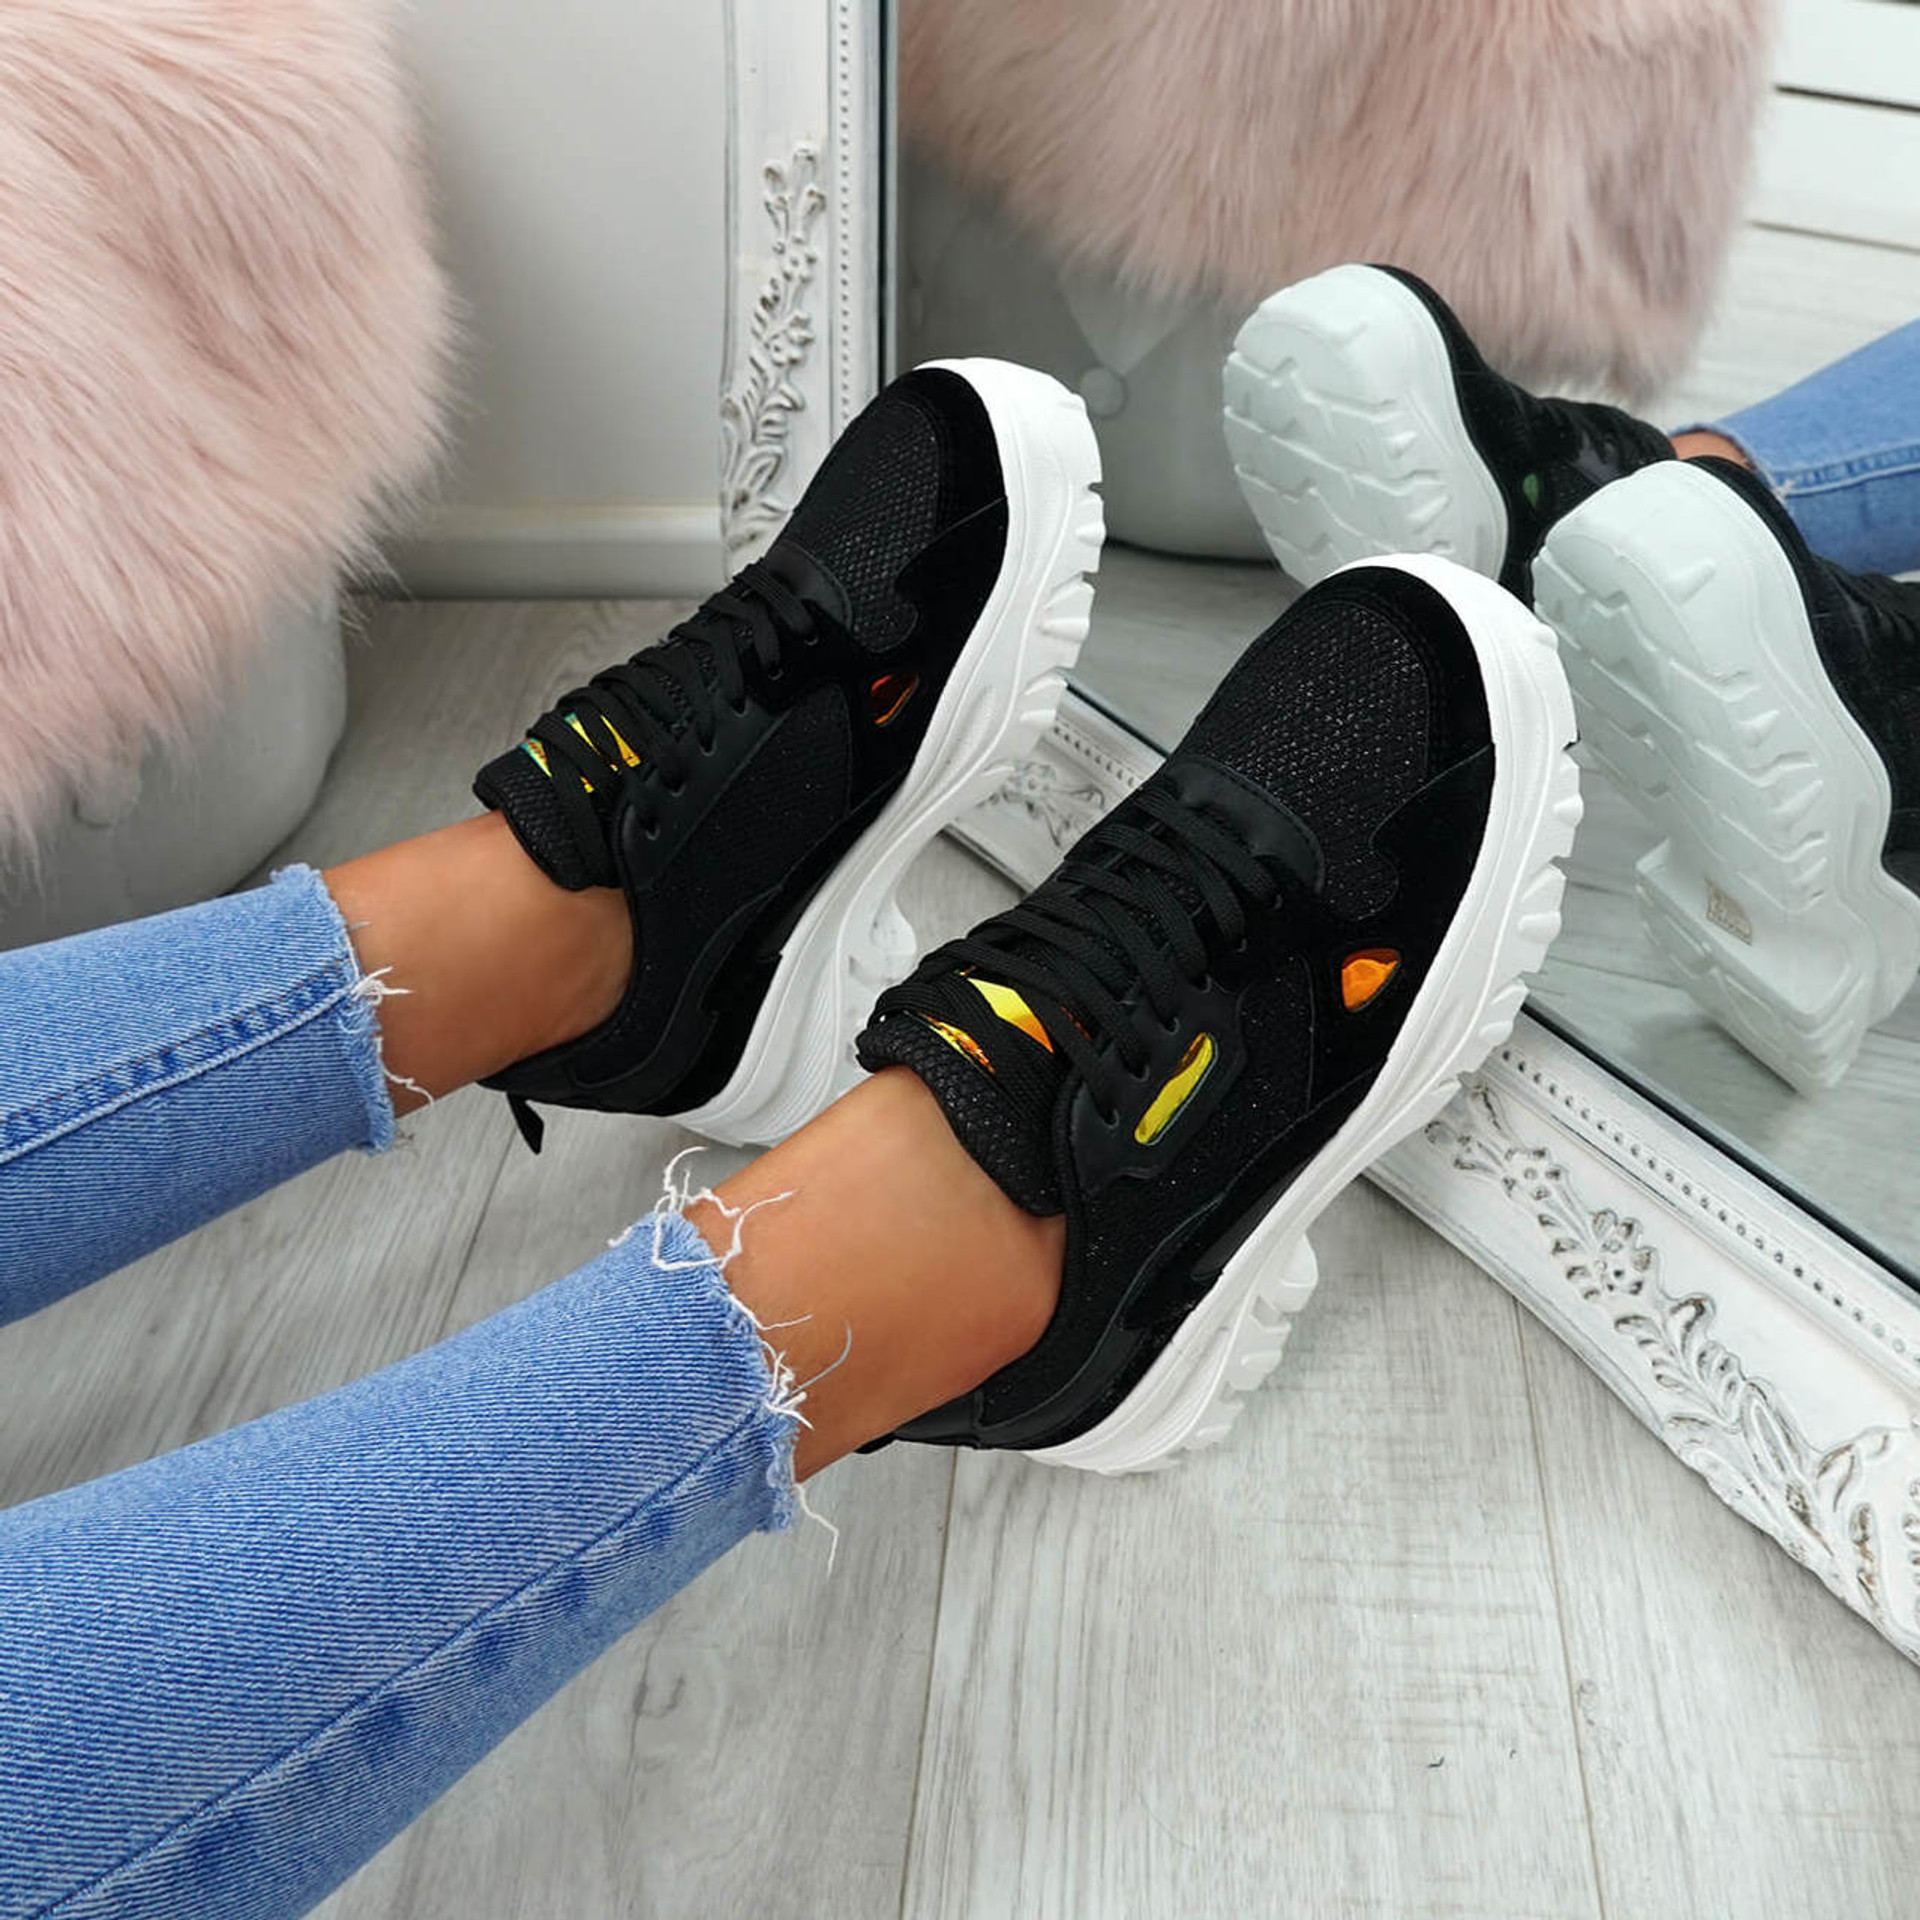 womens black lace-up chunky trainers sneakers size uk 3 4 5 6 7 8